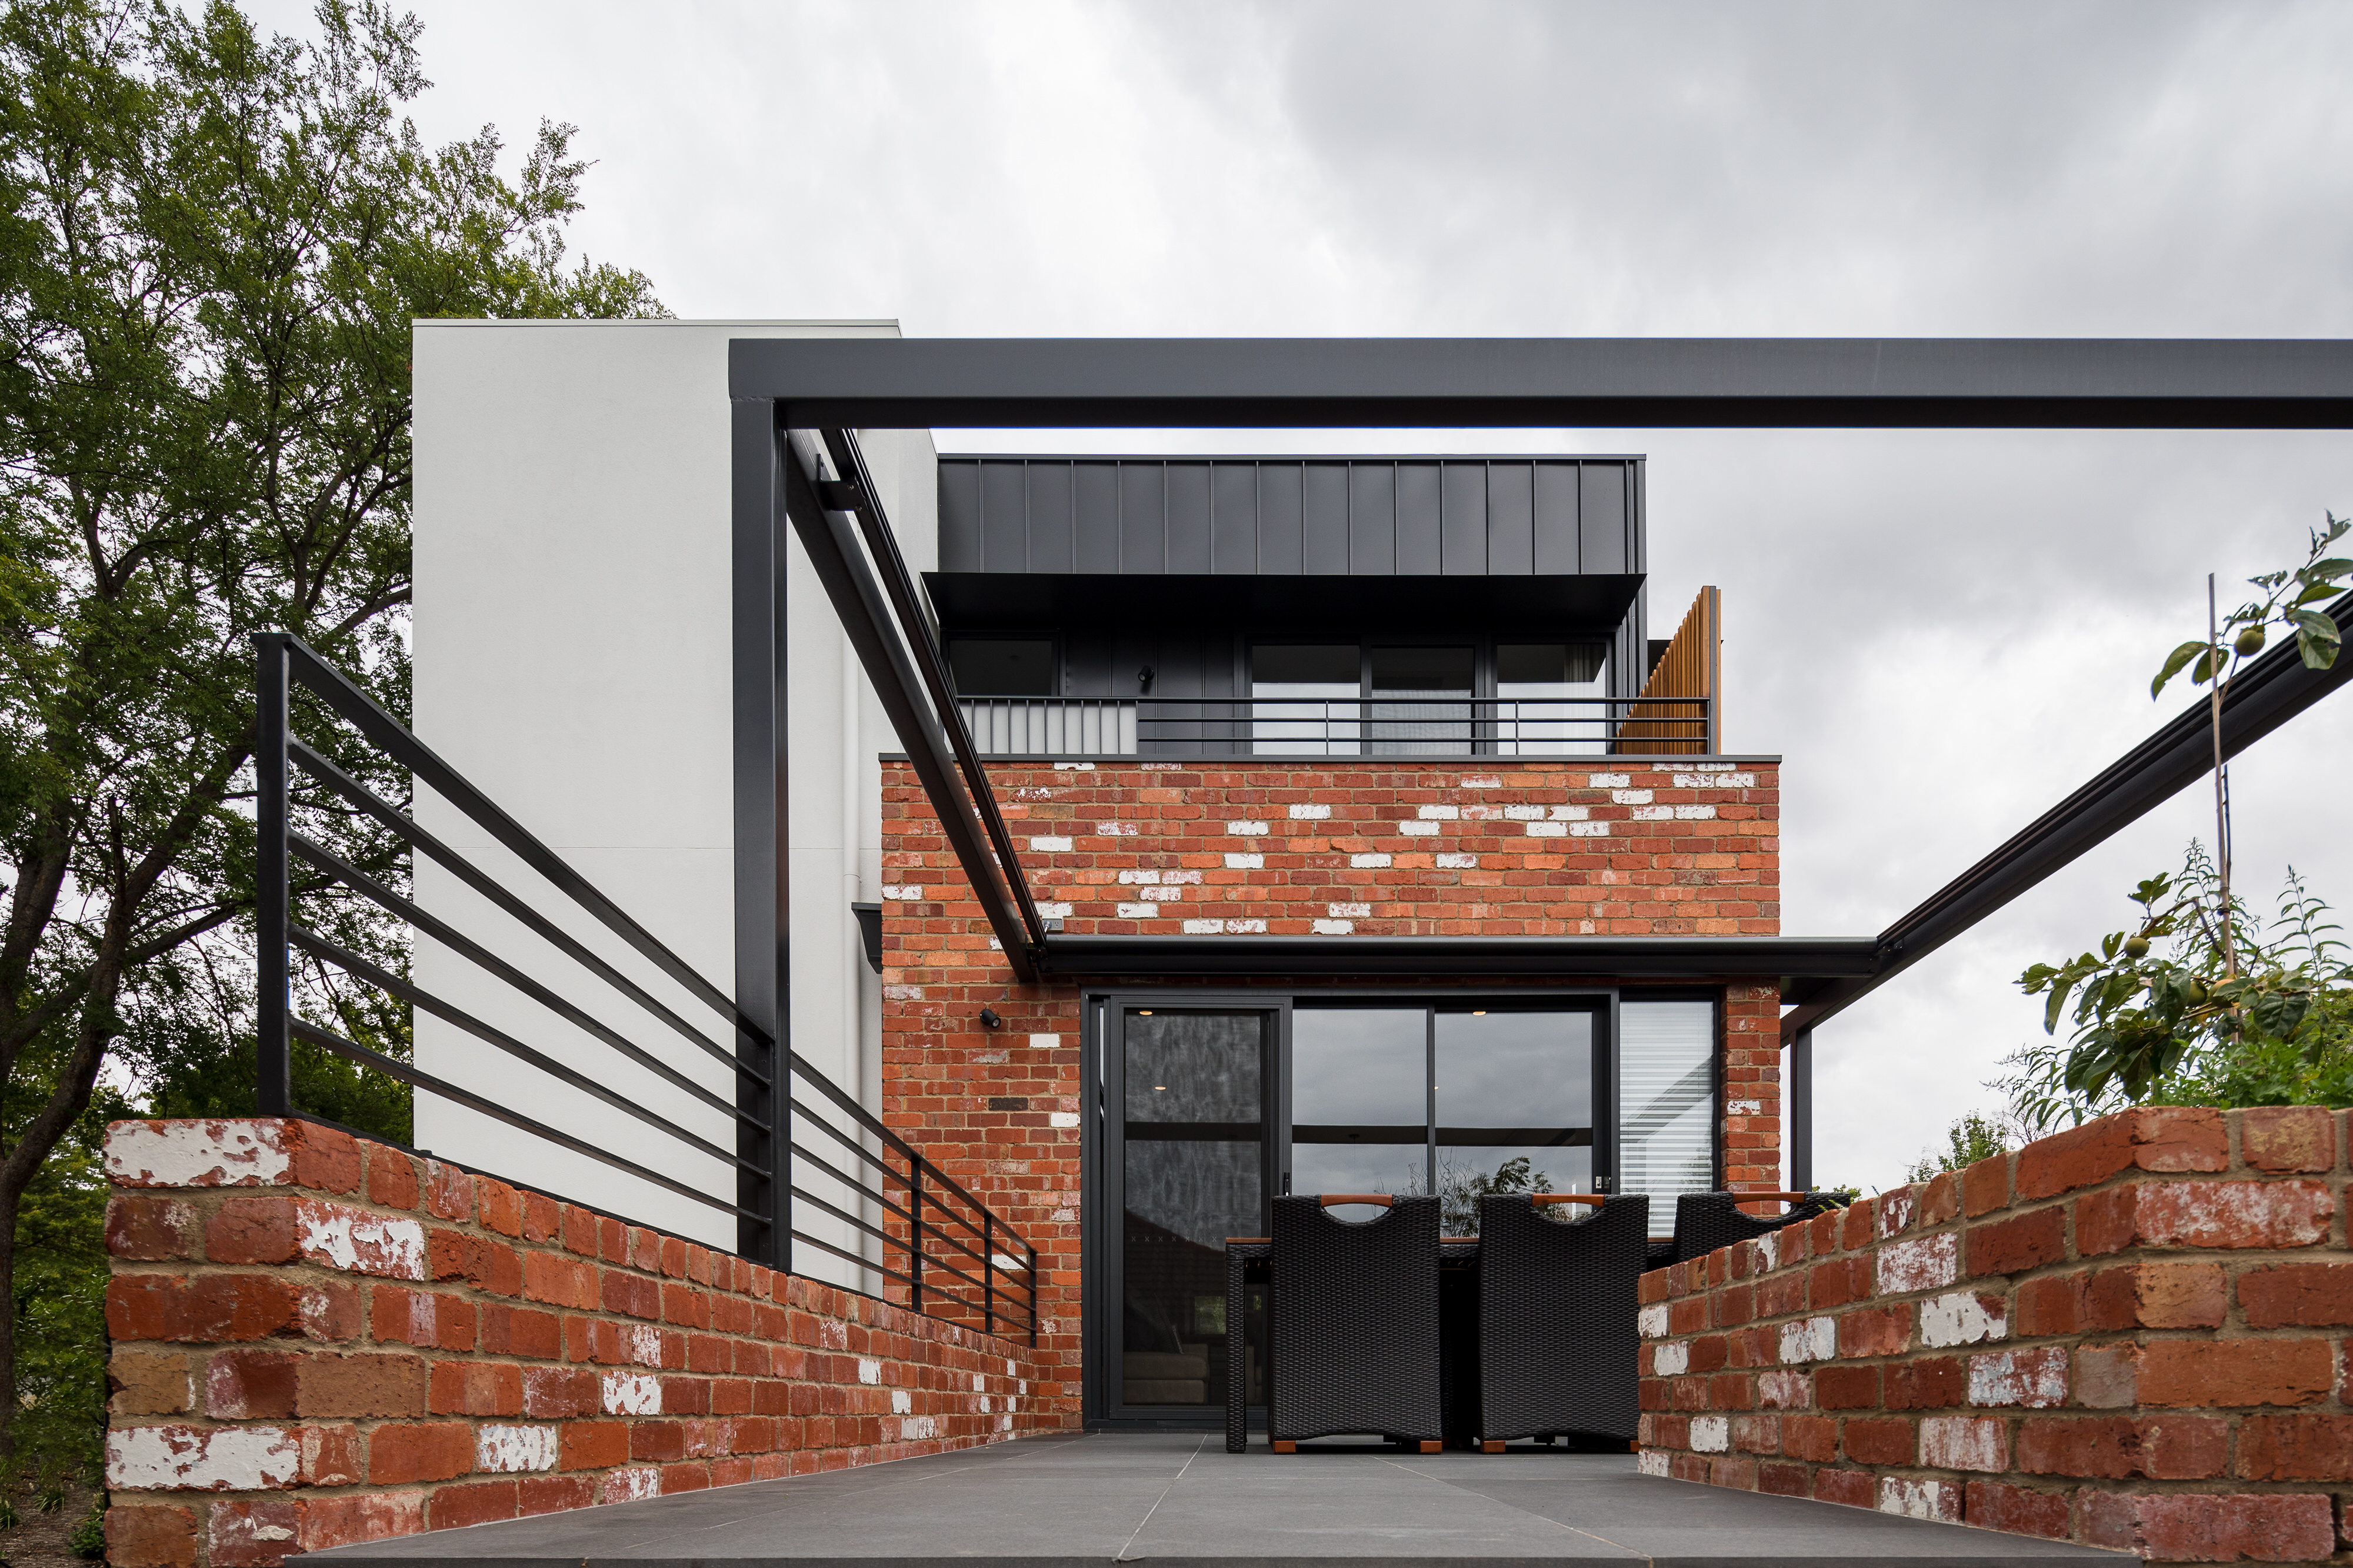 Deck area of modern architect designed home featuring recycled bricks